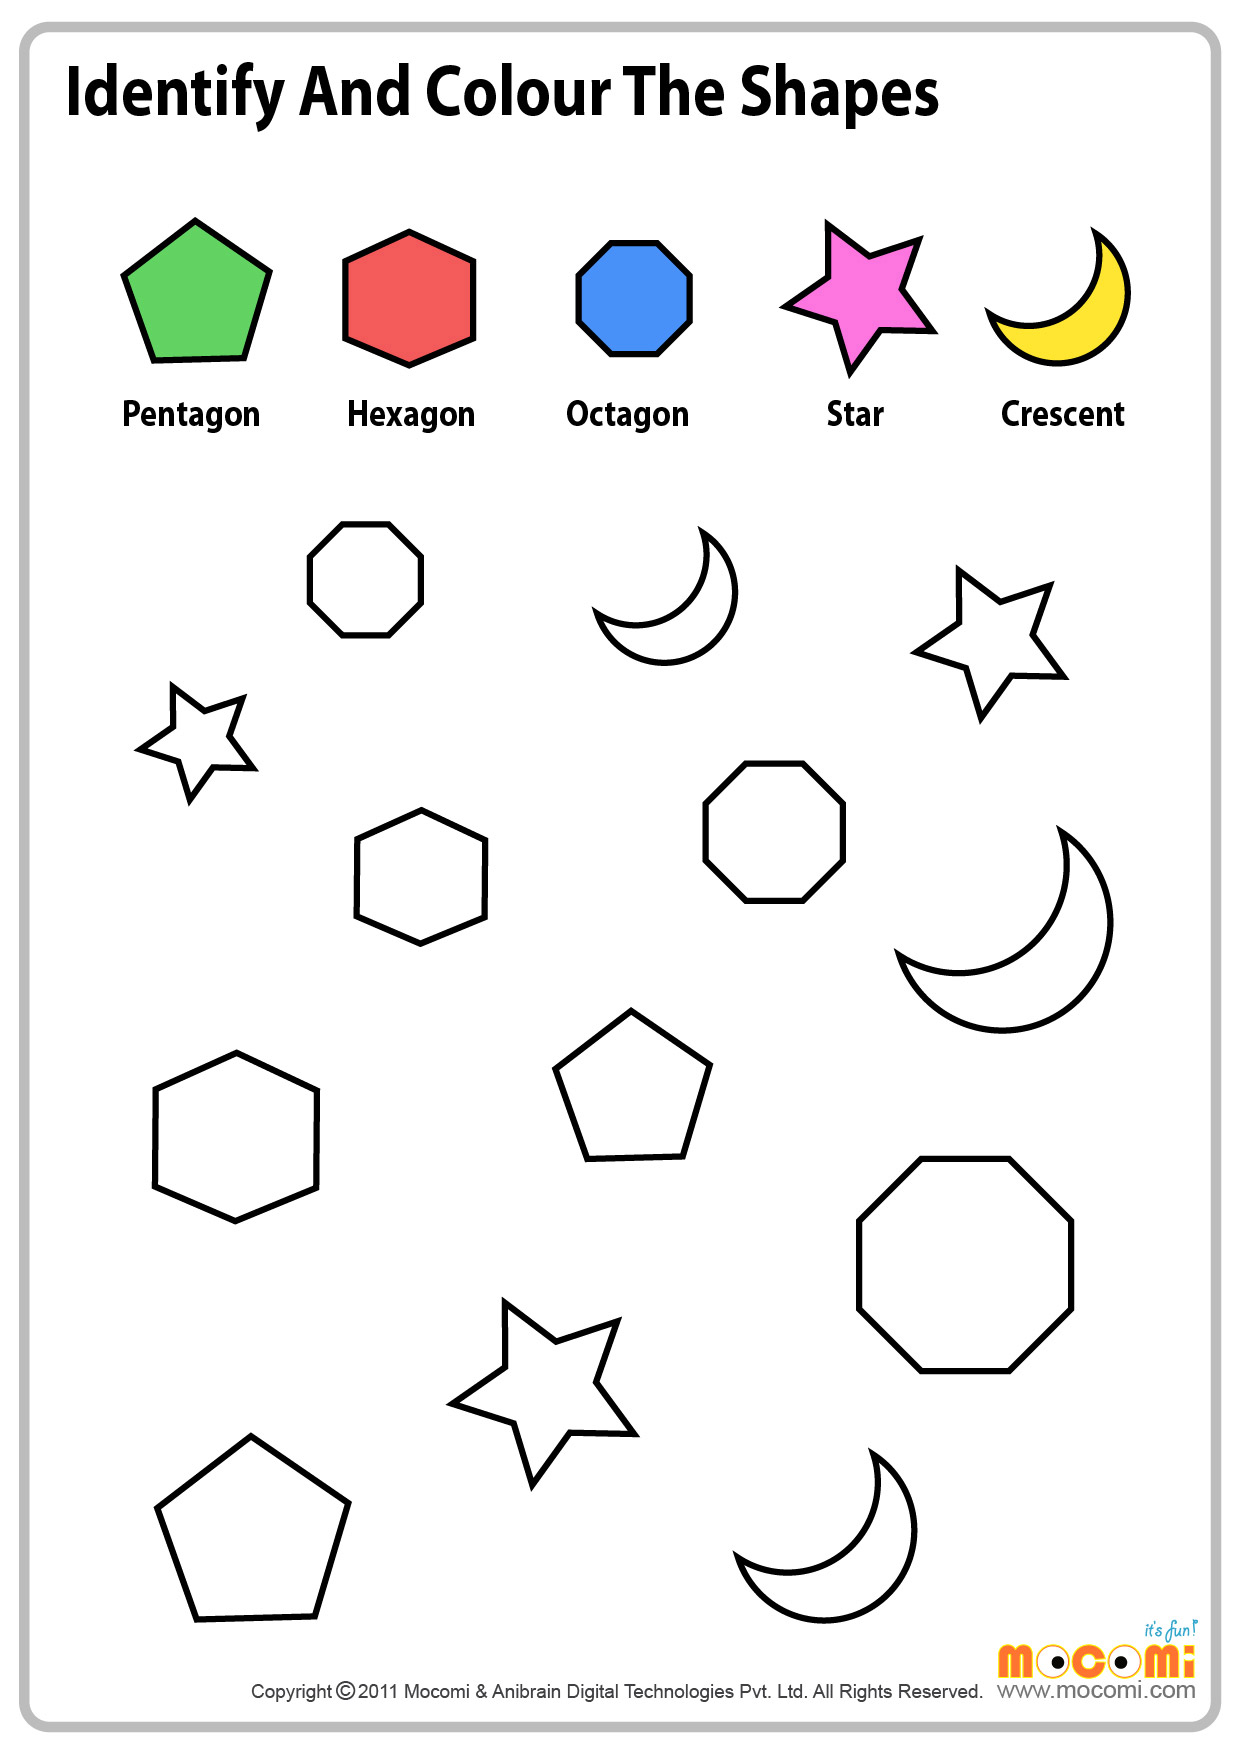 Colour Similar Shapes - Maths Worksheet for Kids | Mocomi